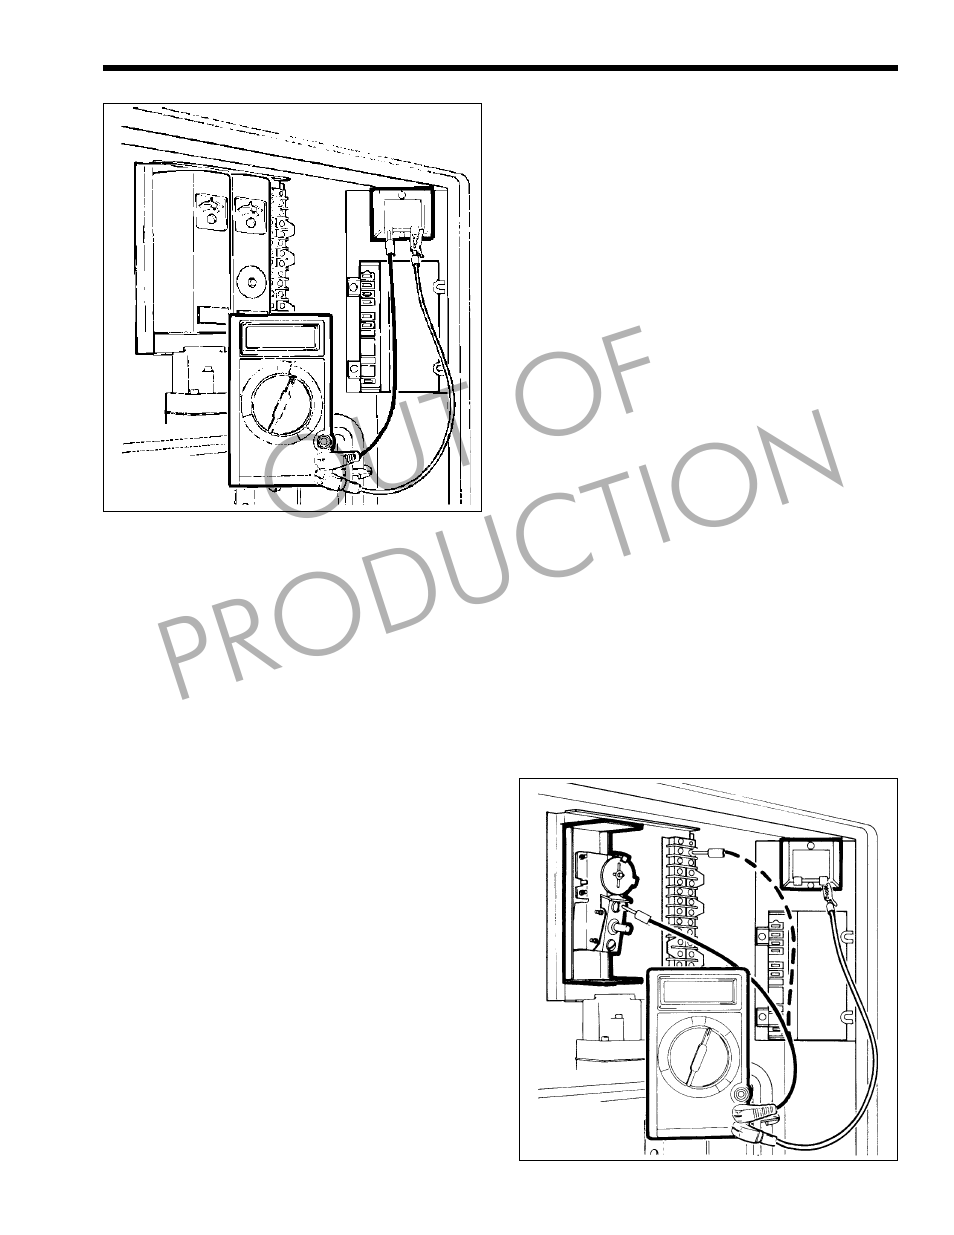 laars mighty therm lo nox ph sizes 250_400 install and operating manual page27 out of production laars mighty therm lo nox ph (sizes 250 400 laars mighty therm wiring diagram at aneh.co